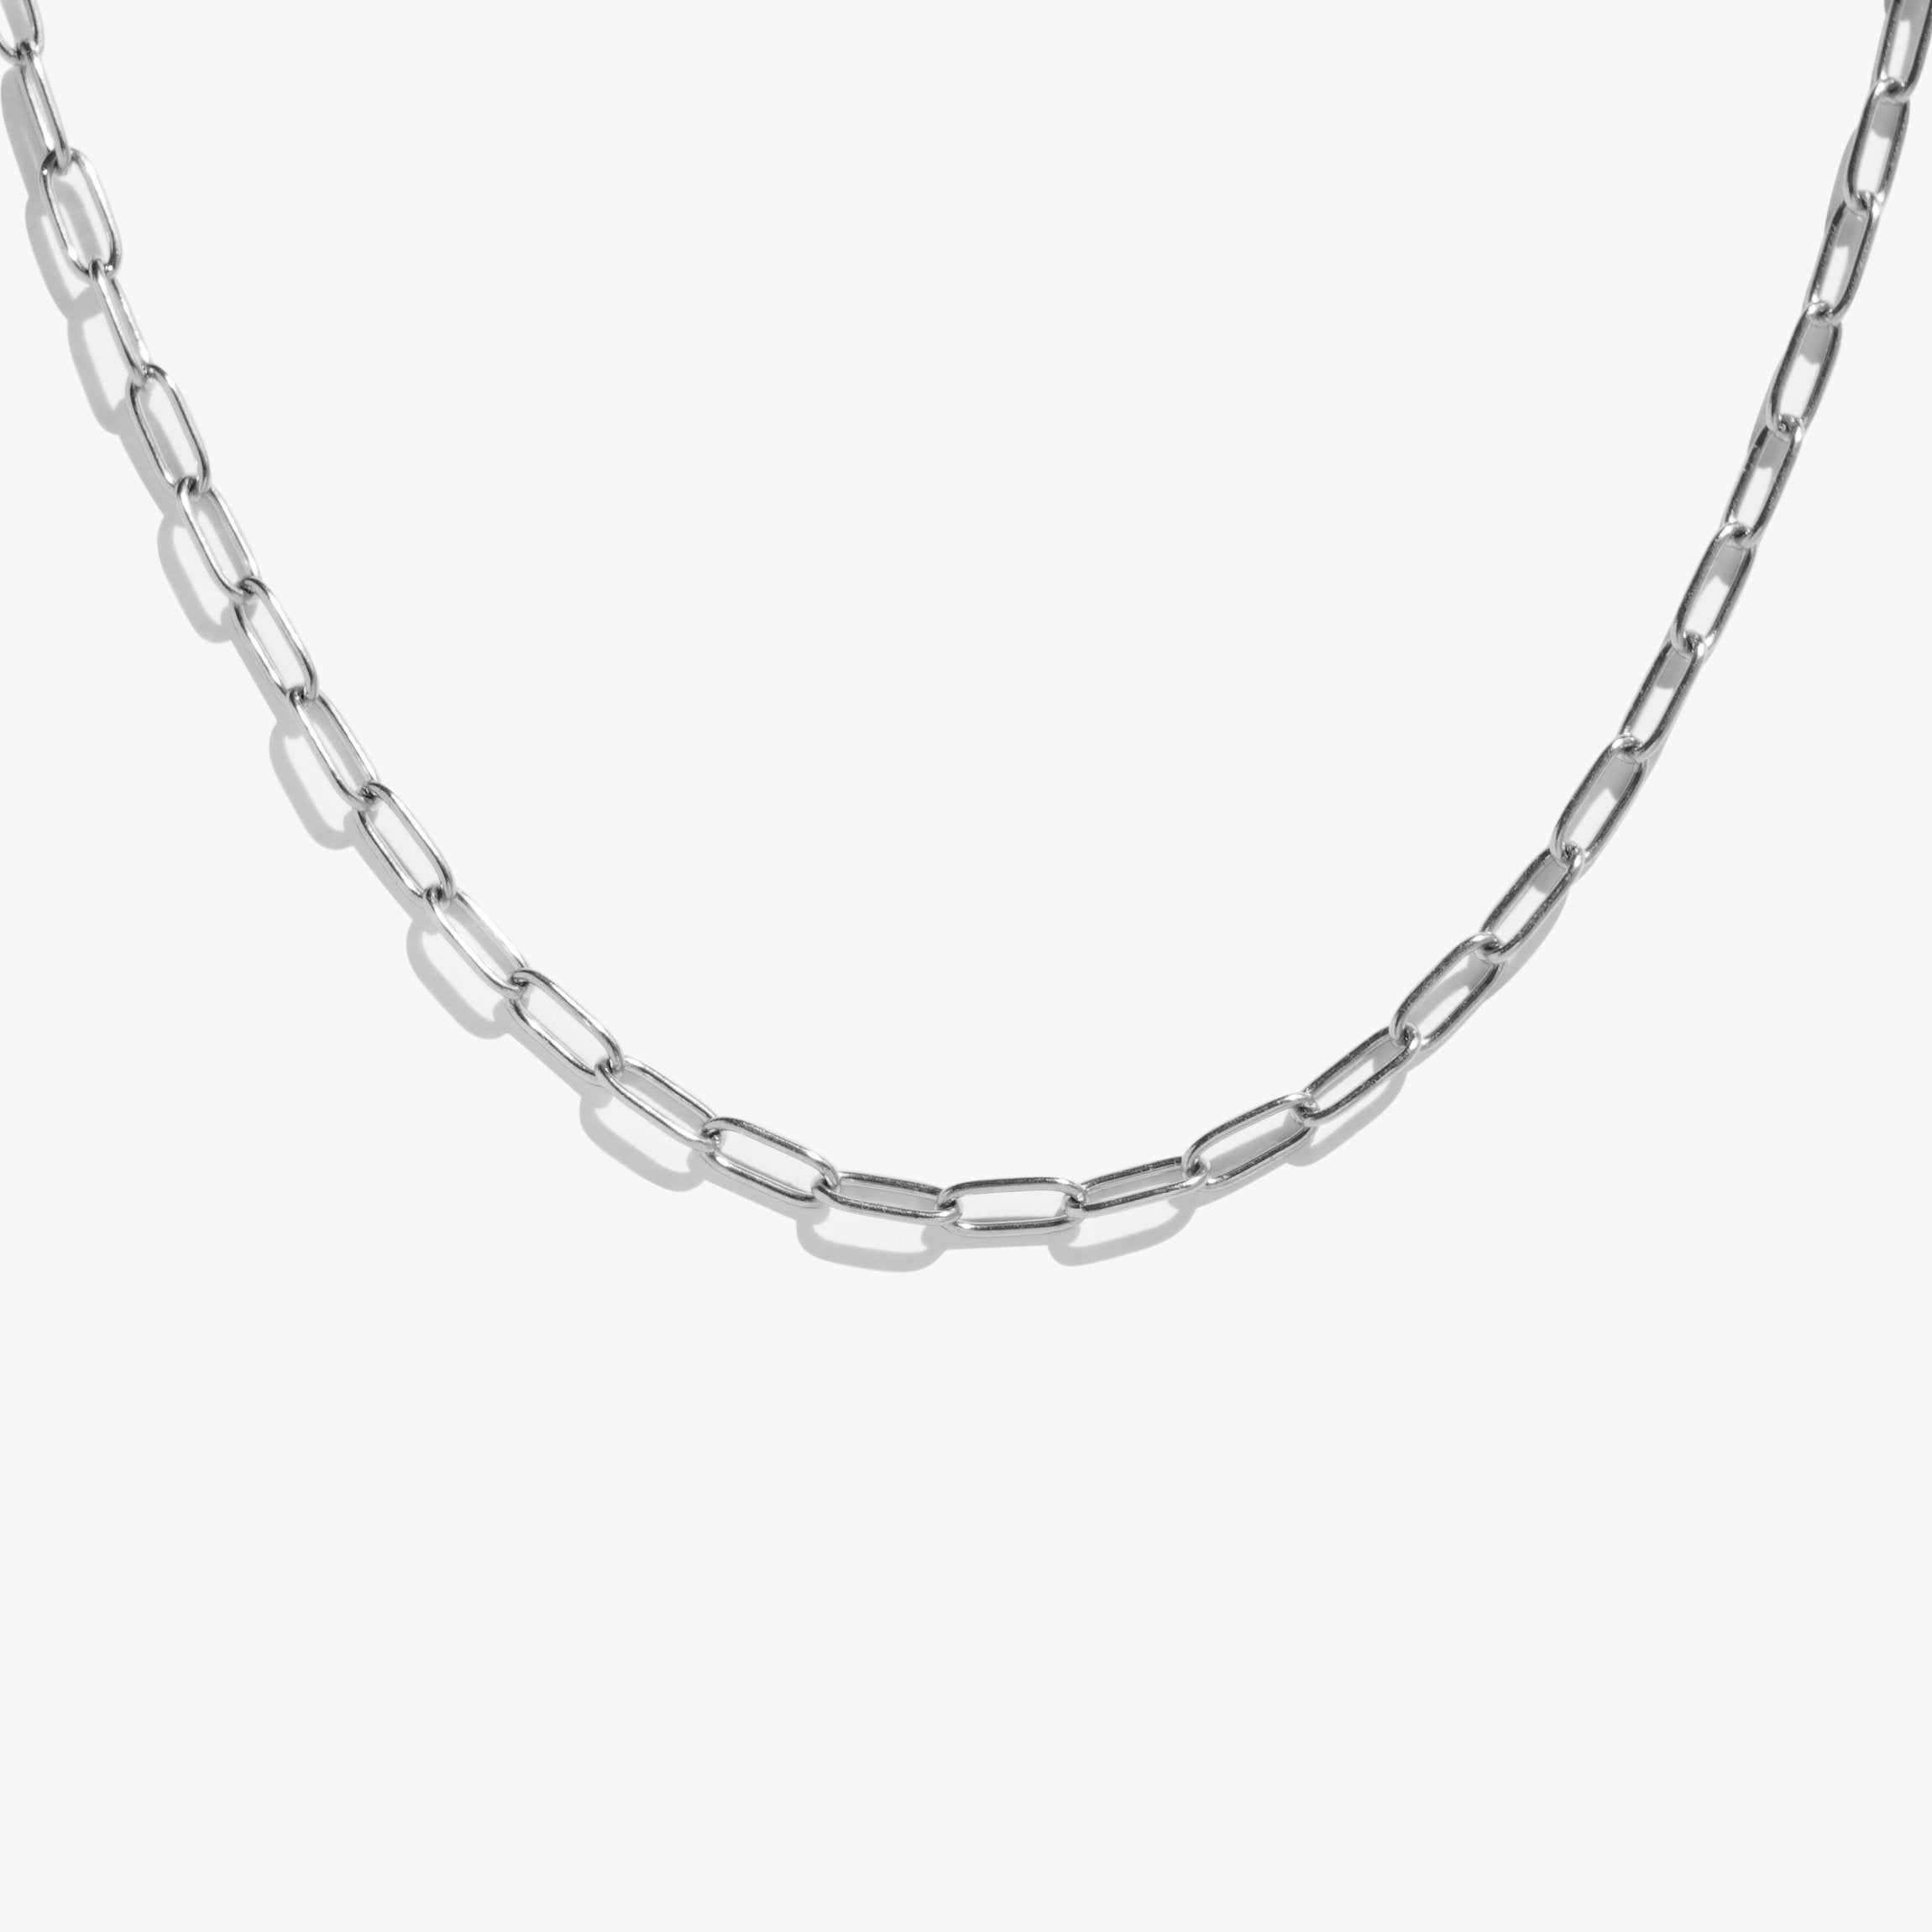 Large Link Chain - Silver